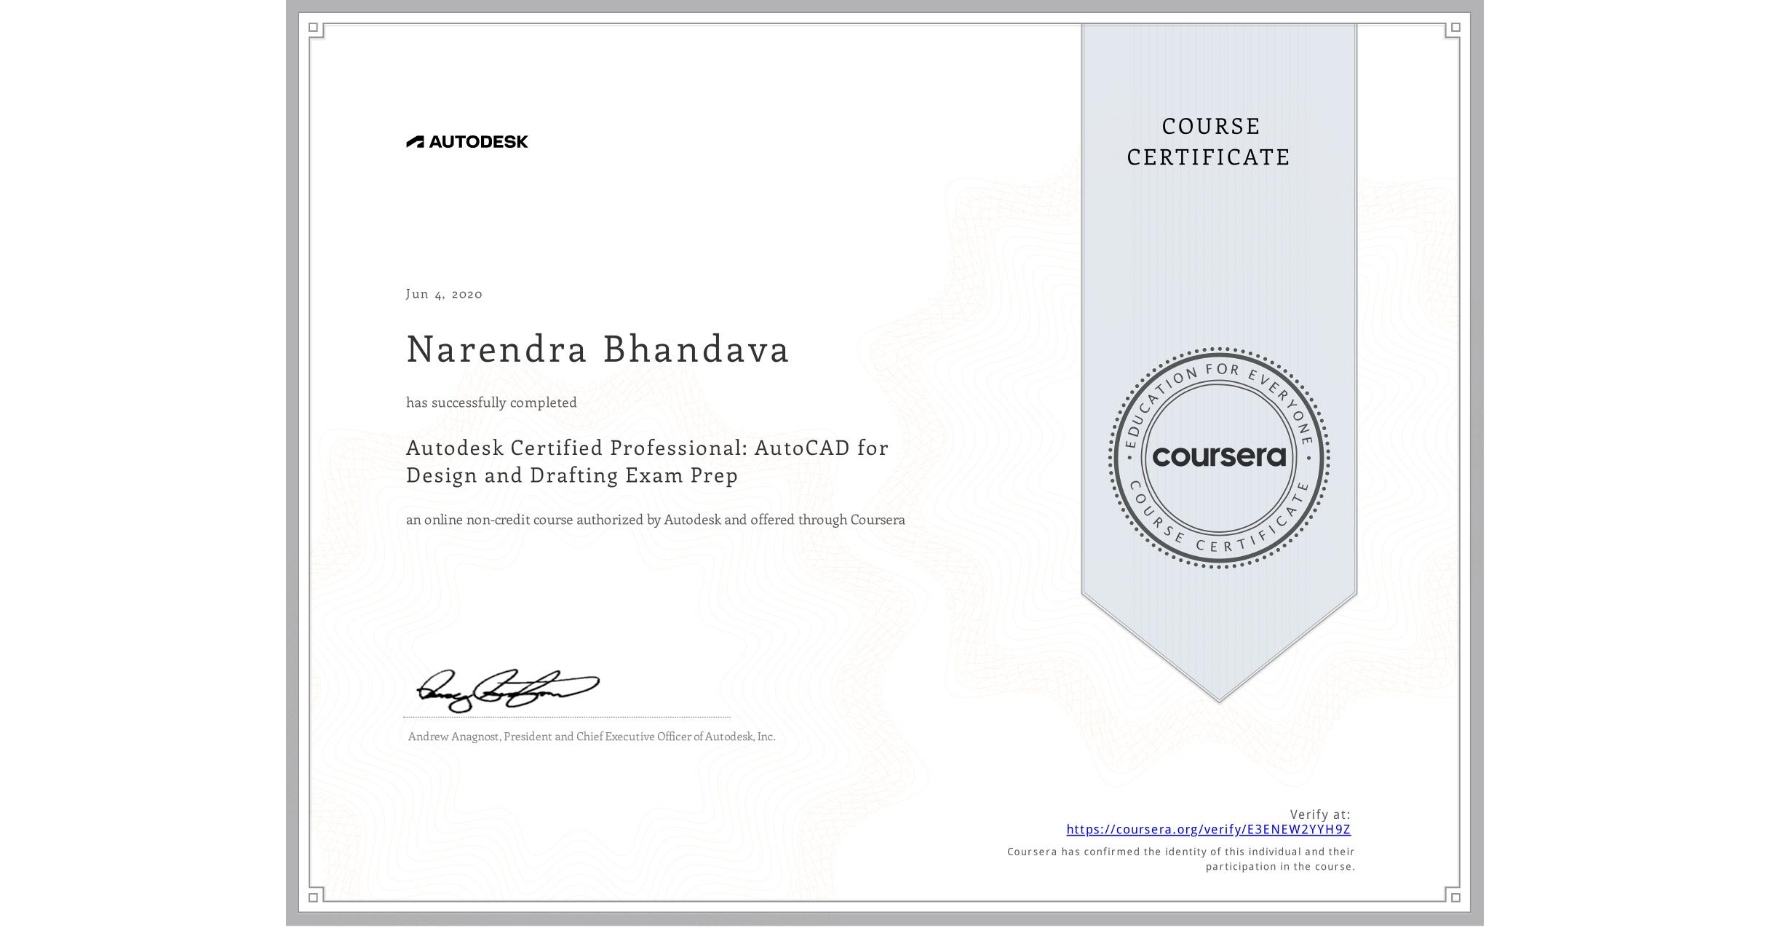 View certificate for Narendra Bhandava, Autodesk Certified Professional: AutoCAD for Design and Drafting Exam Prep, an online non-credit course authorized by Autodesk and offered through Coursera